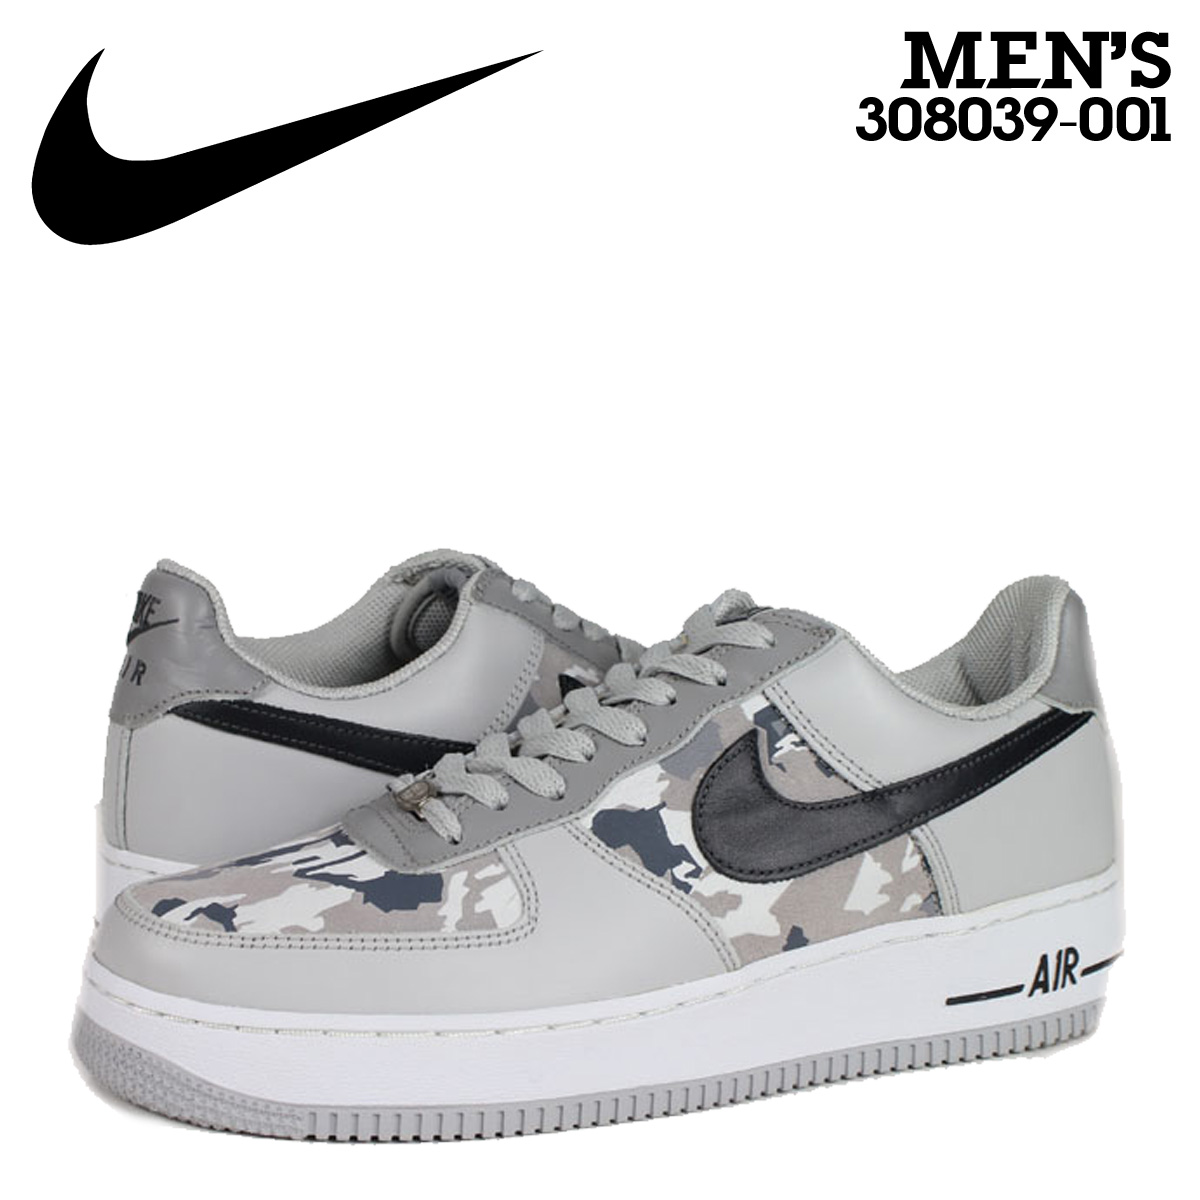 ALLSPORTS  Nike NIKE air force sneakers AIR FORCE 1 PREMIUM NEUTRAL ... b66c0d5e3c6a